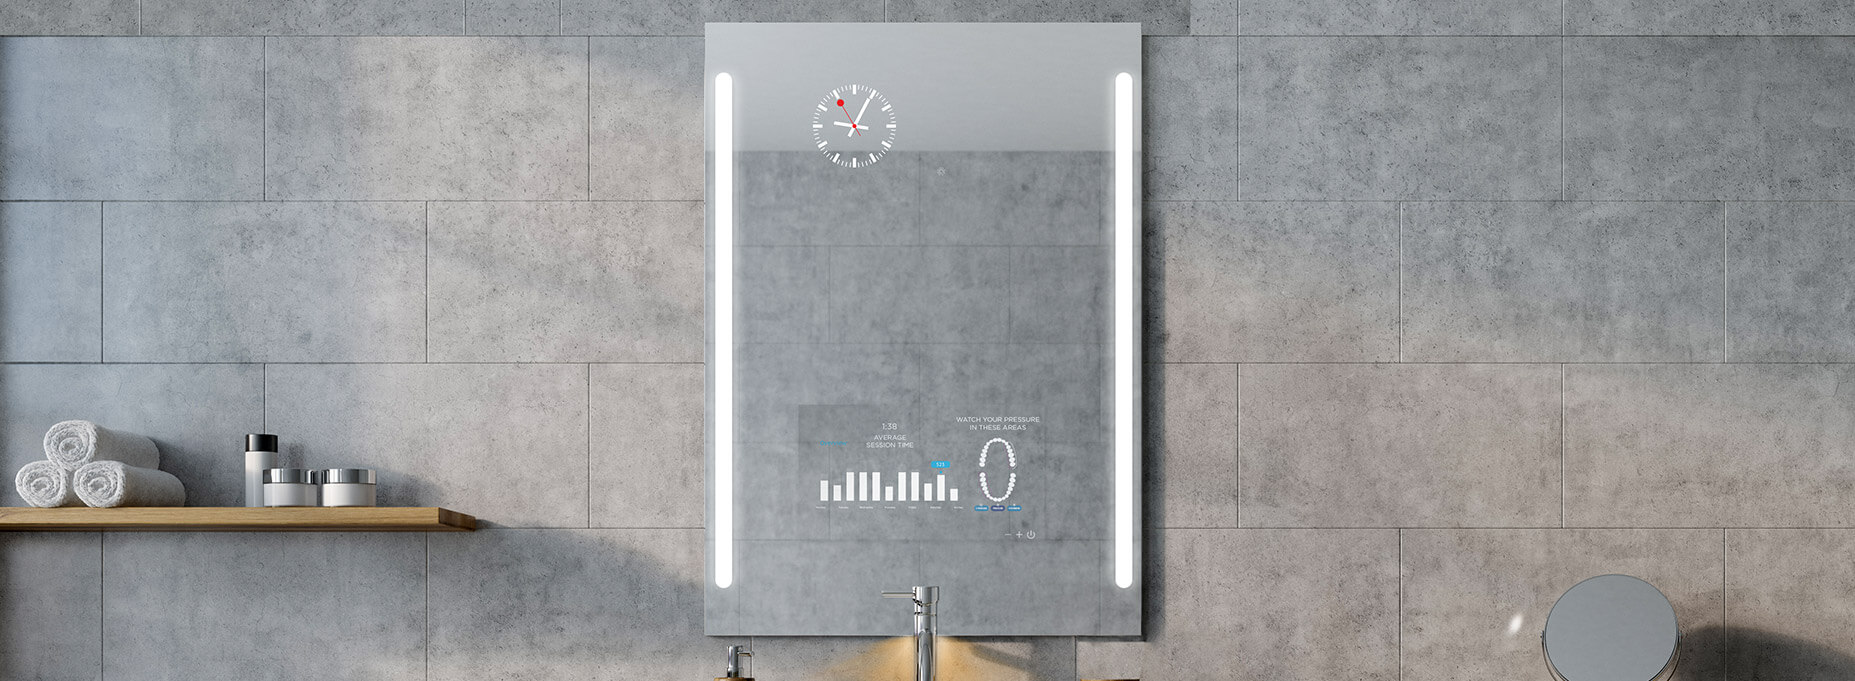 Smart vanity mirror TV you'll enjoy using over and over again.